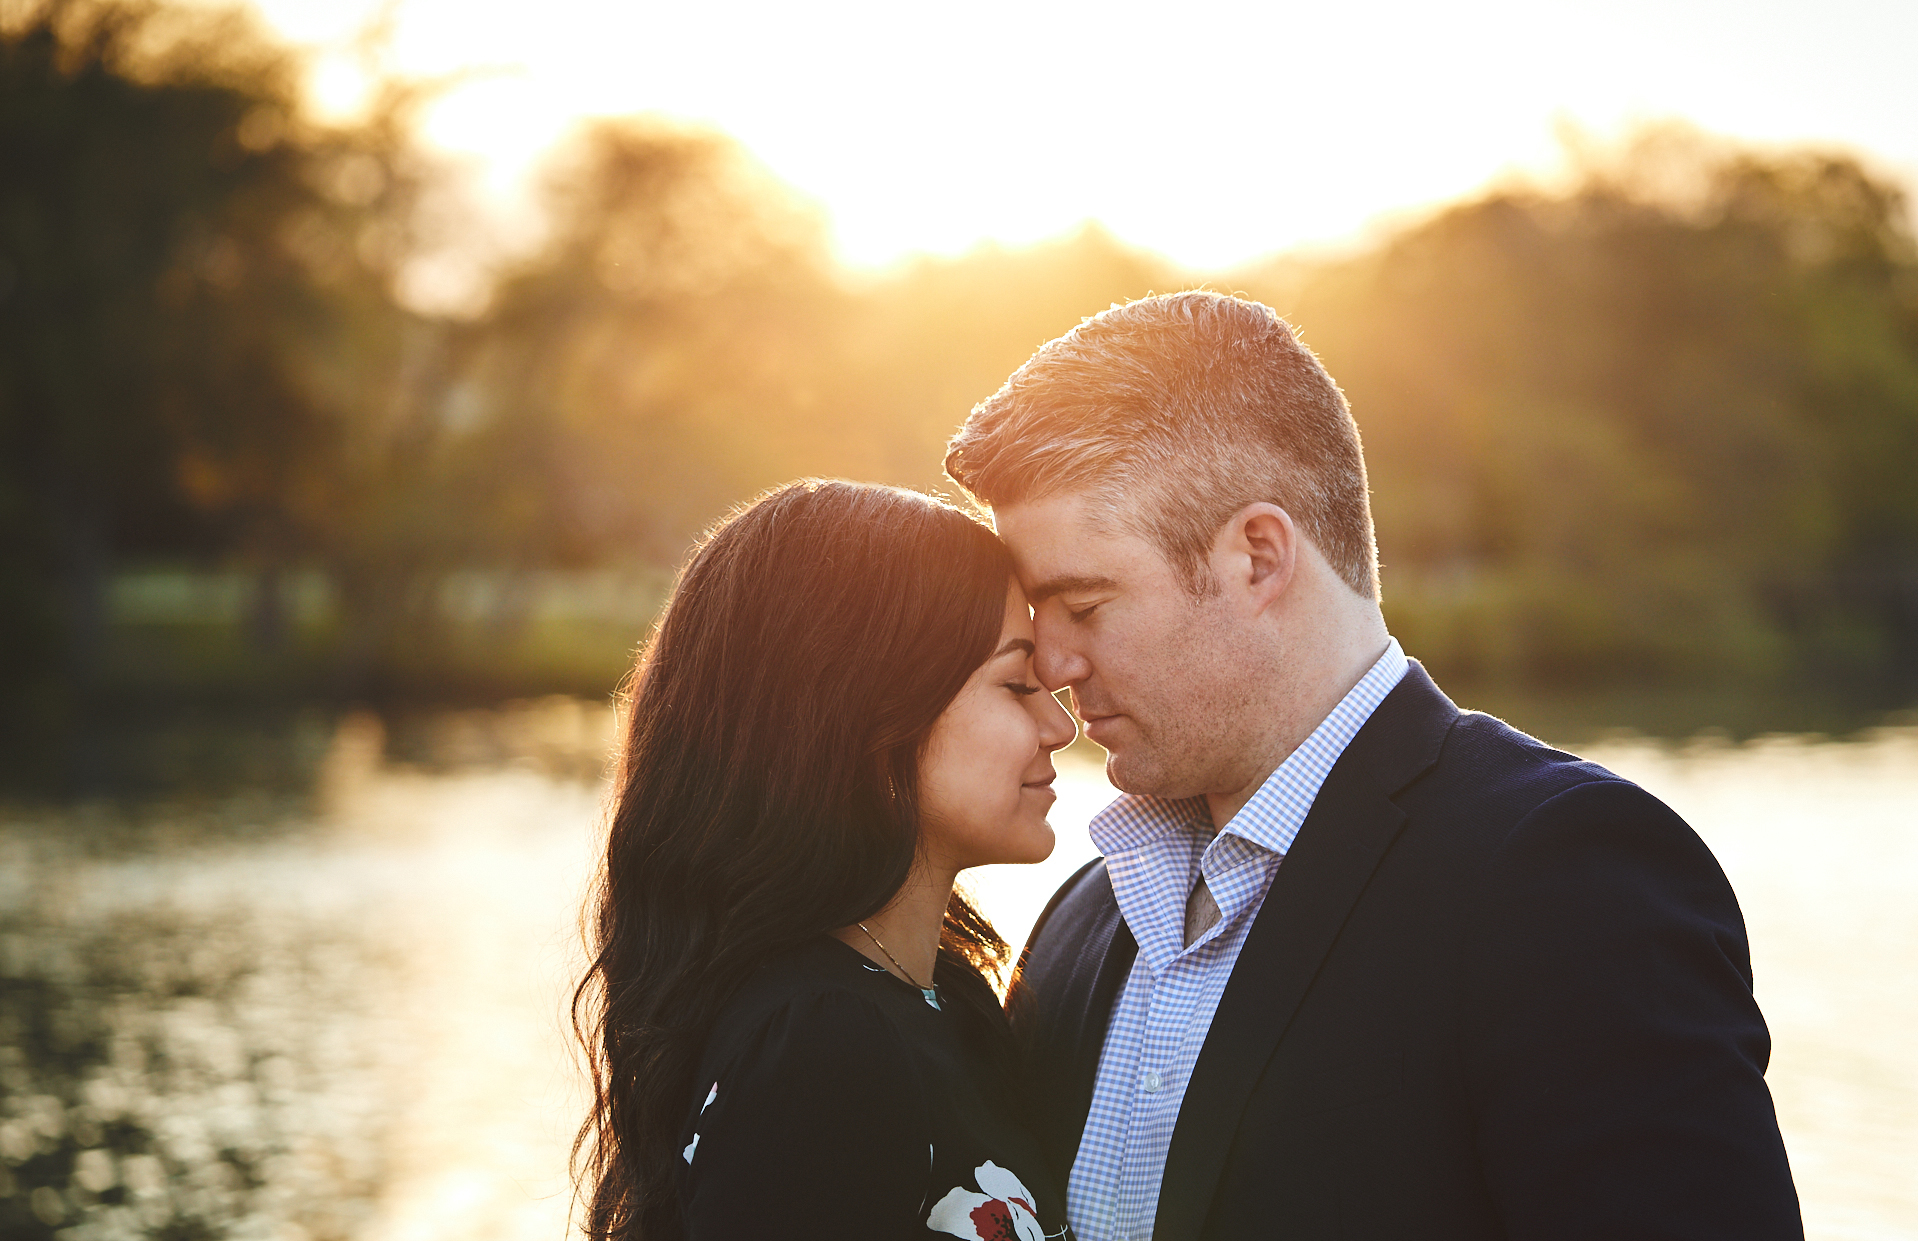 190516_SummerSpringLakeNJDivineParkEngagementSession_By_BriJohnsonWeddings0024.jpg